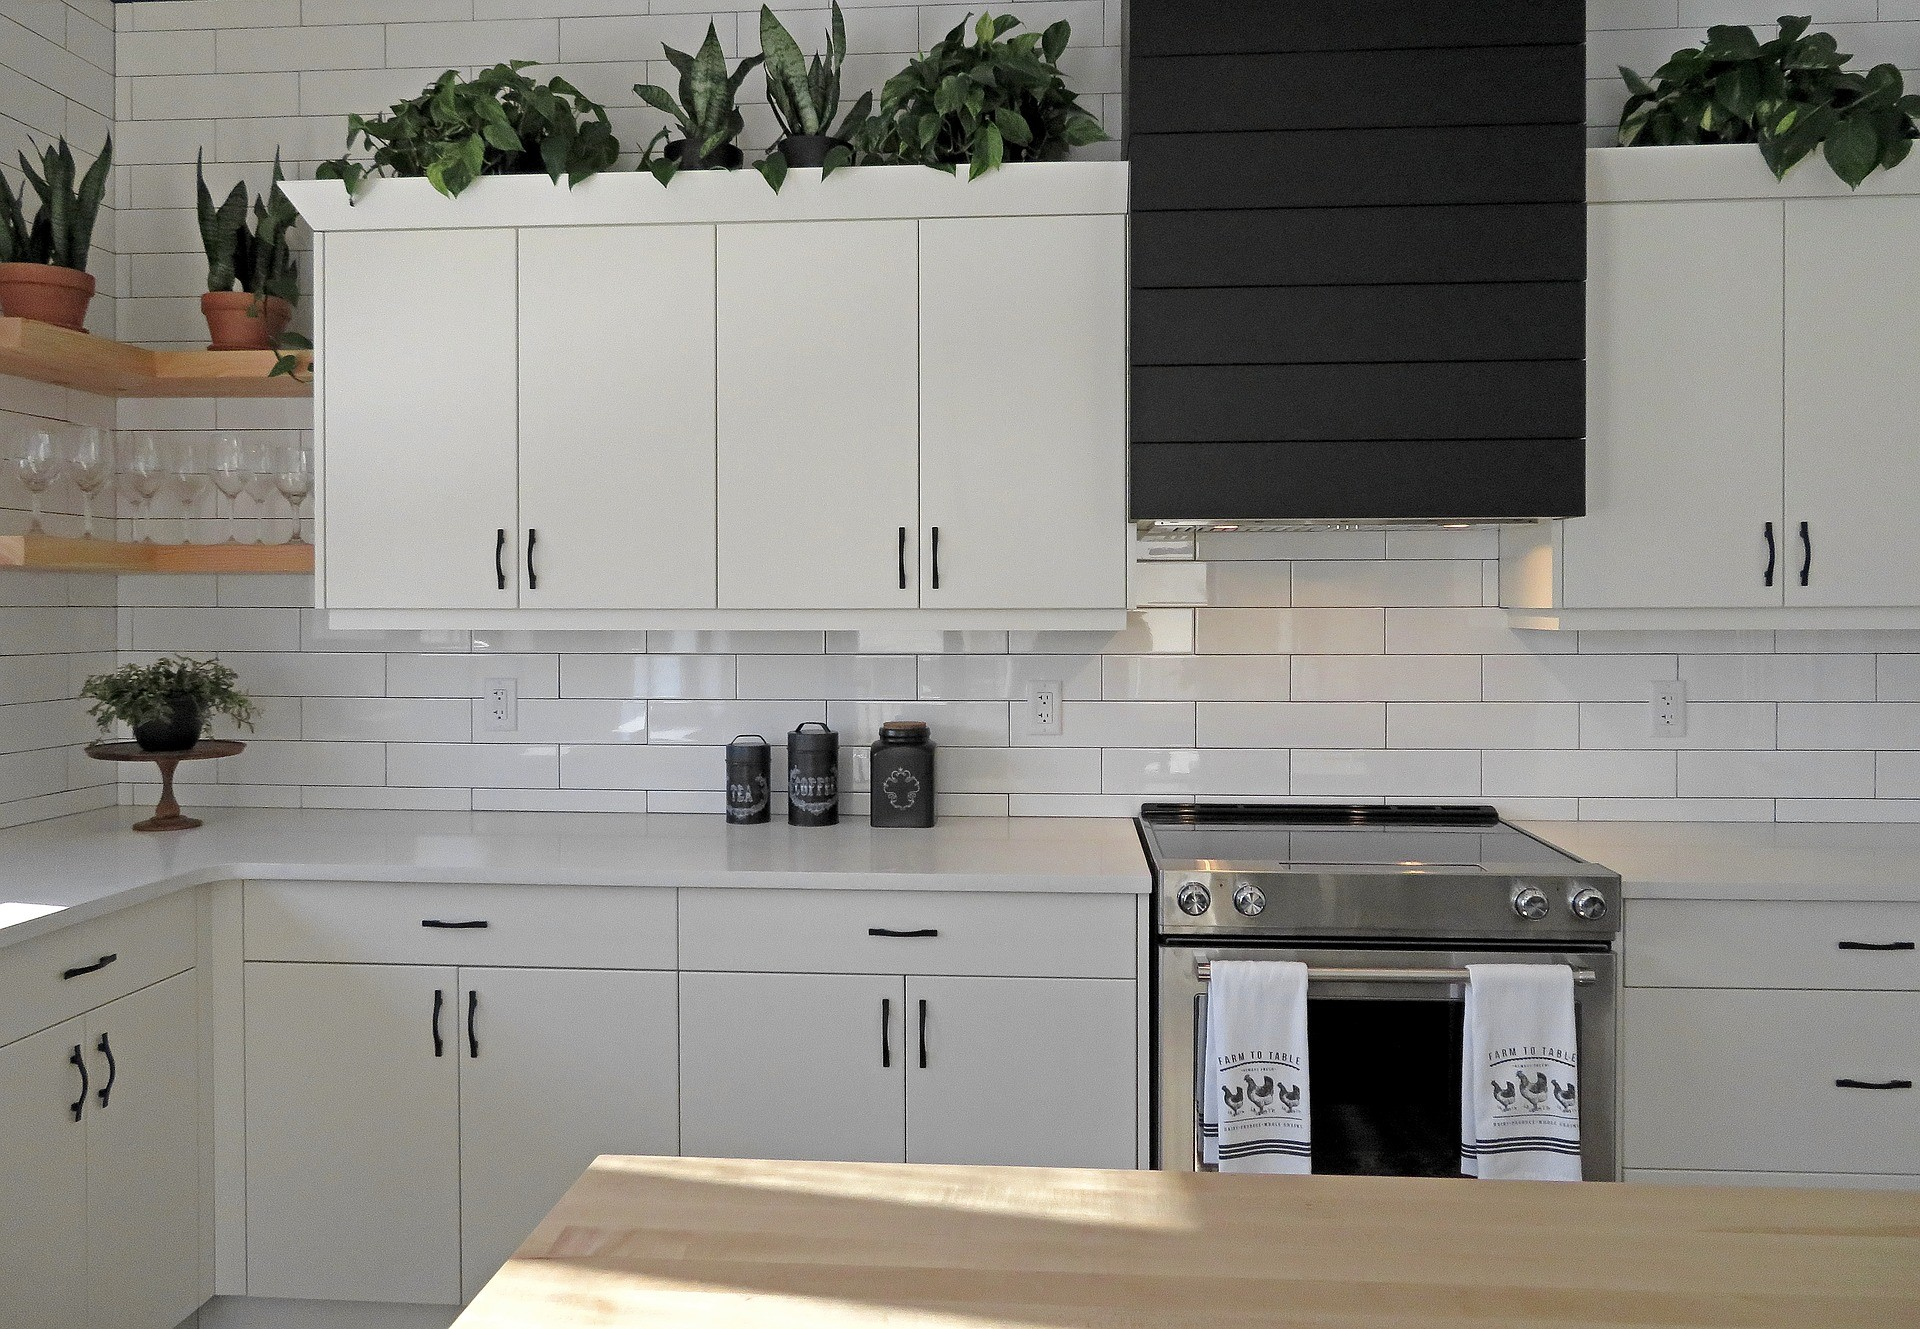 Reno Kitchen & Bath Home Remodeling Professionals- best countertops, bathrooms, renovations, custom cabinets, home additions- 65-We do kitchen & bath remodeling, home renovations, custom lighting, custom cabinet installation, cabinet refacing and refinishing, outdoor kitchens, commercial kitchen, countertops, and more